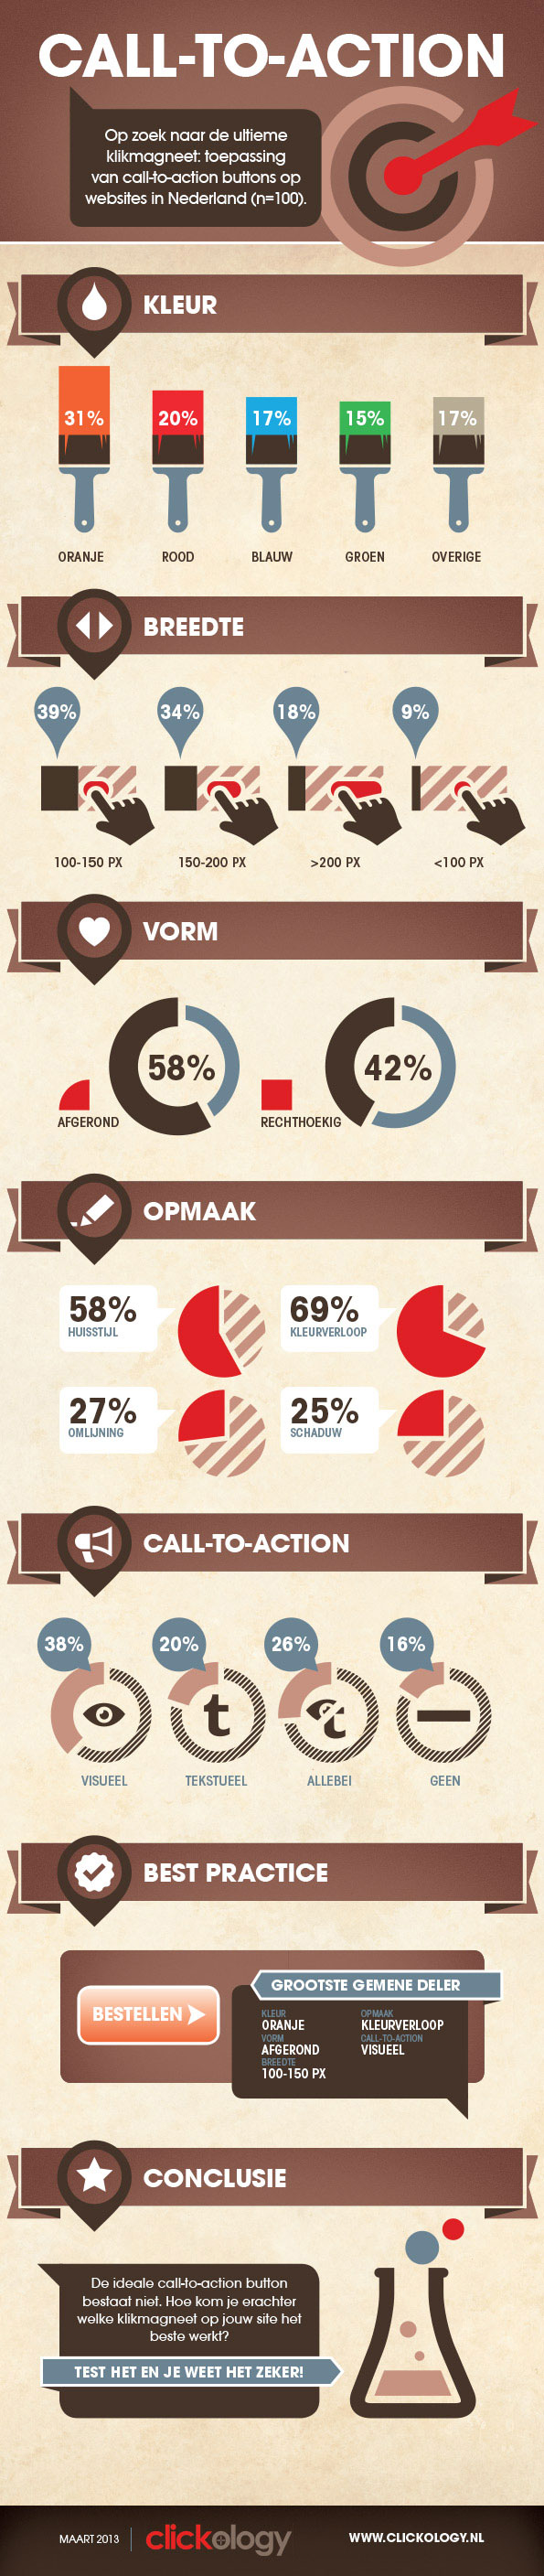 infographic-call-to-action